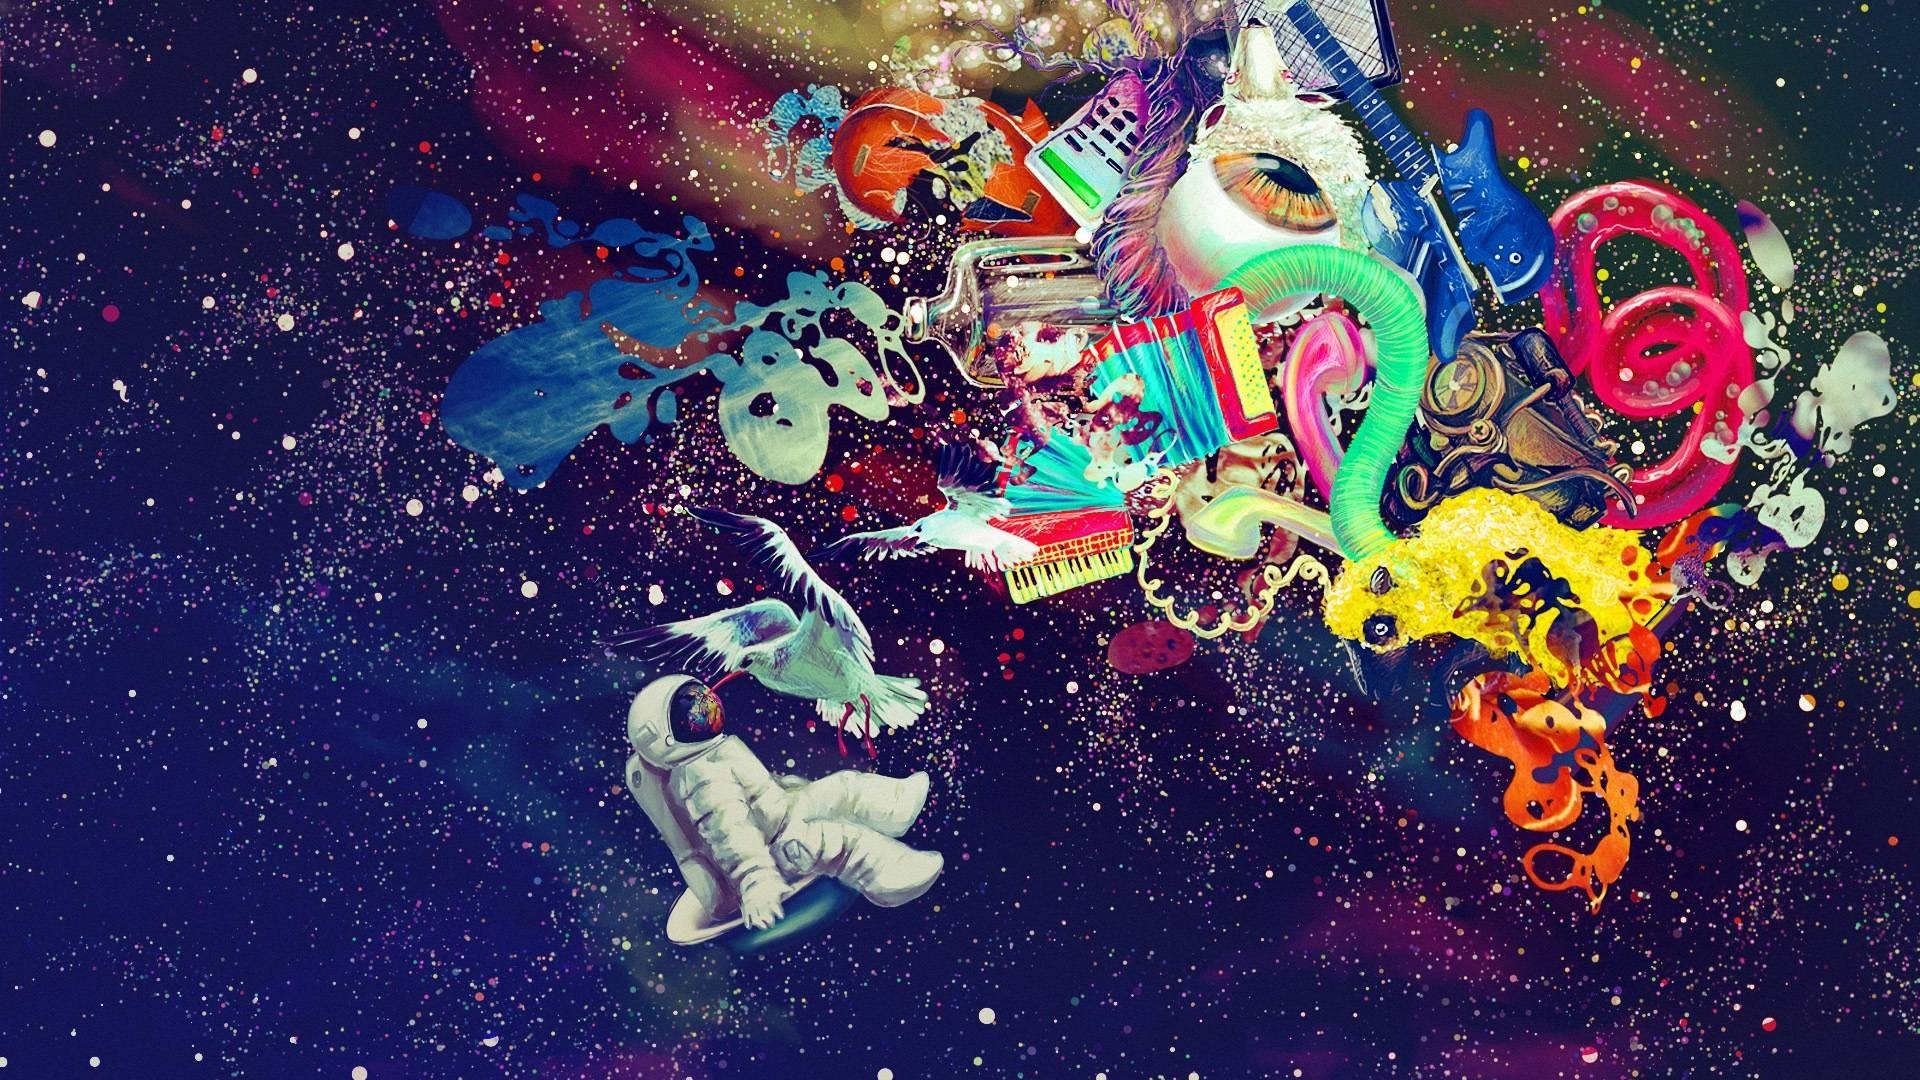 trippy hd desktop wallpaper 23352 - baltana